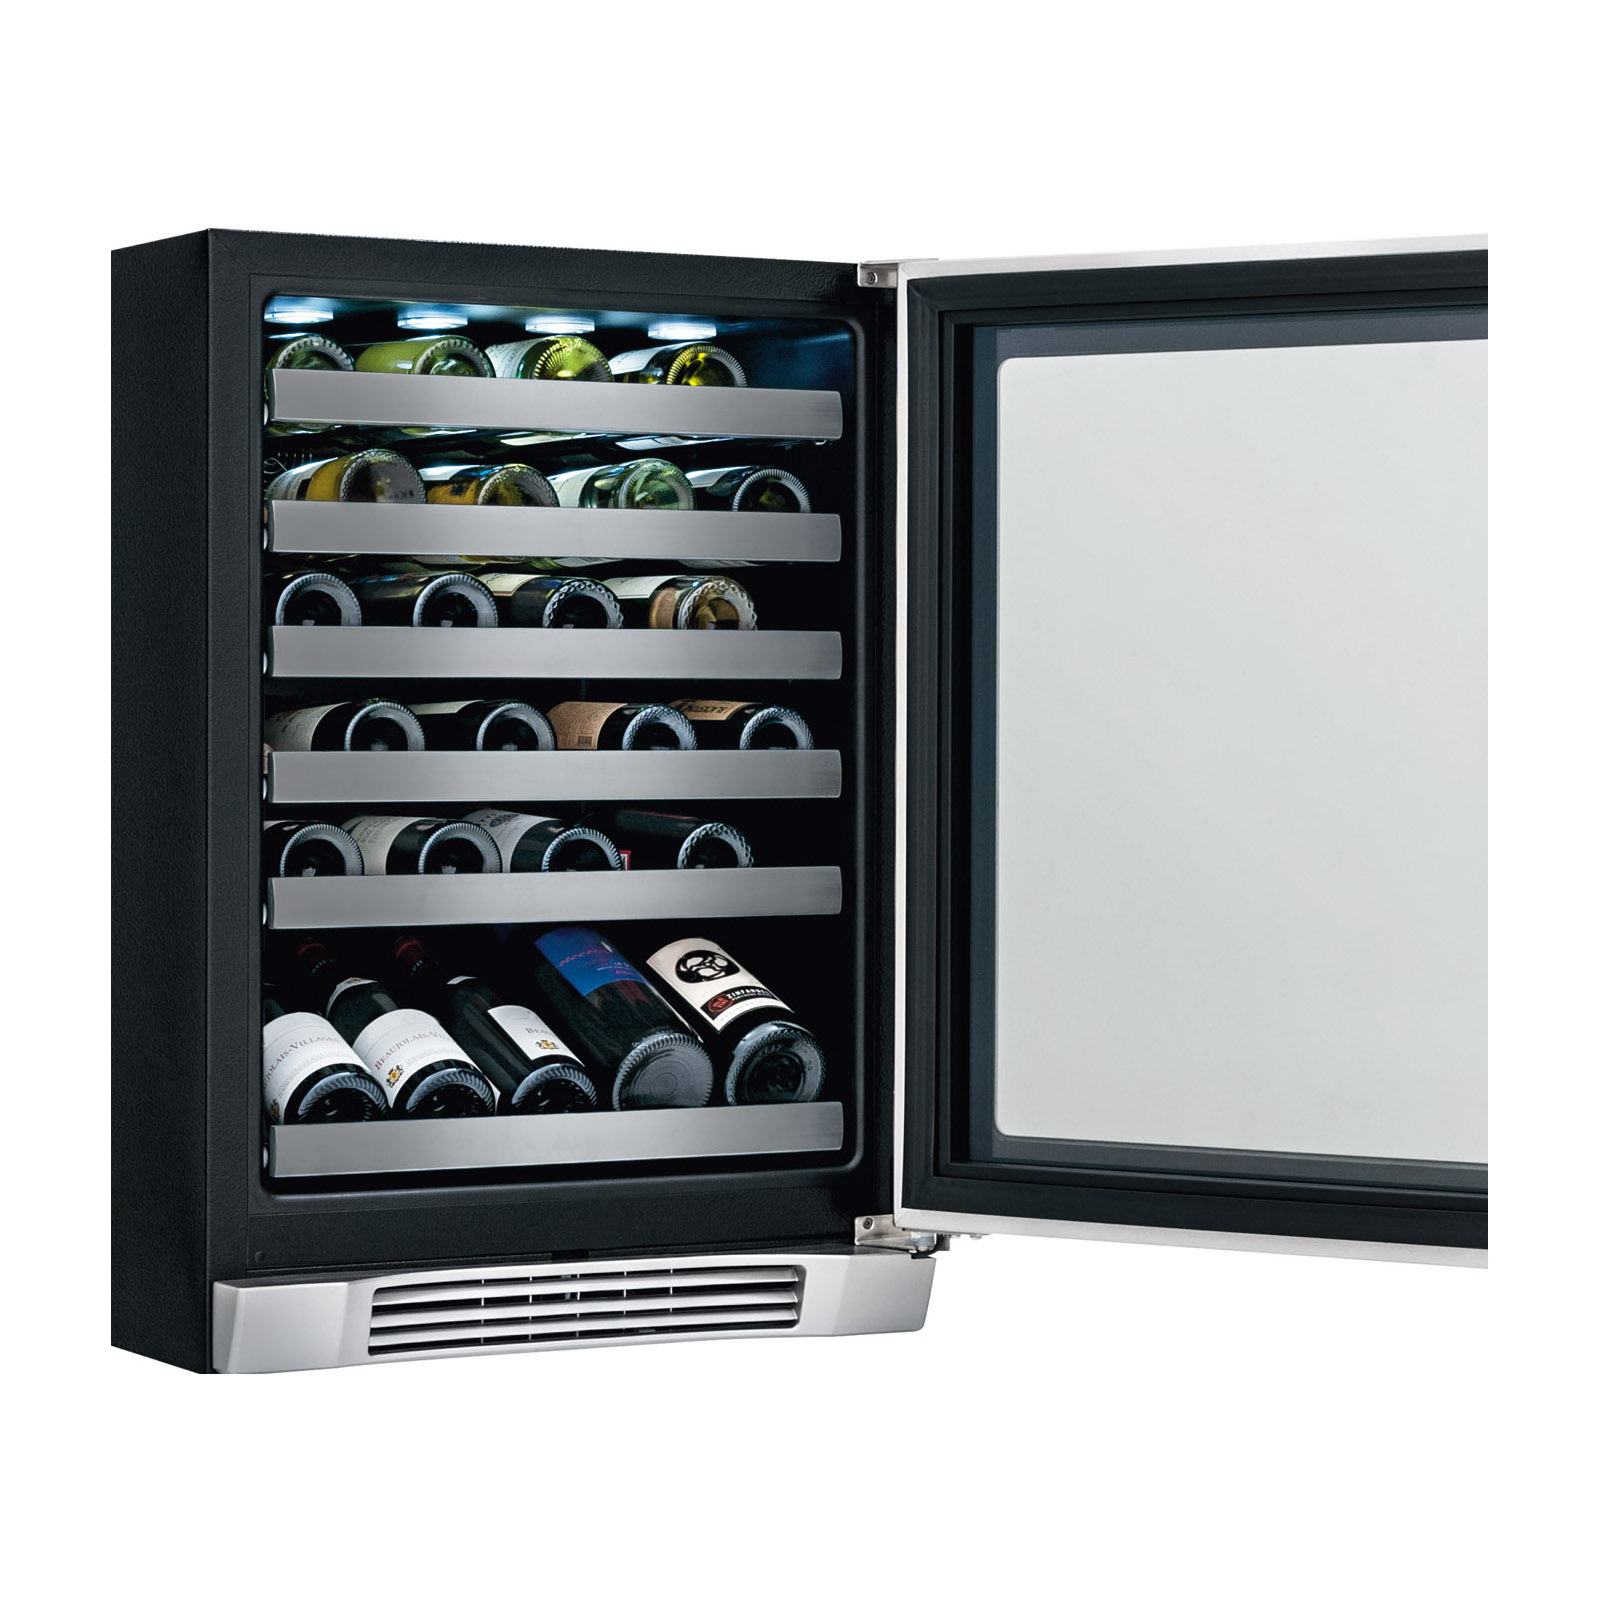 Electrolux EI24WC10QS 4.9 cu. ft. Right Hinge Wine Cooler - Stainless Steel